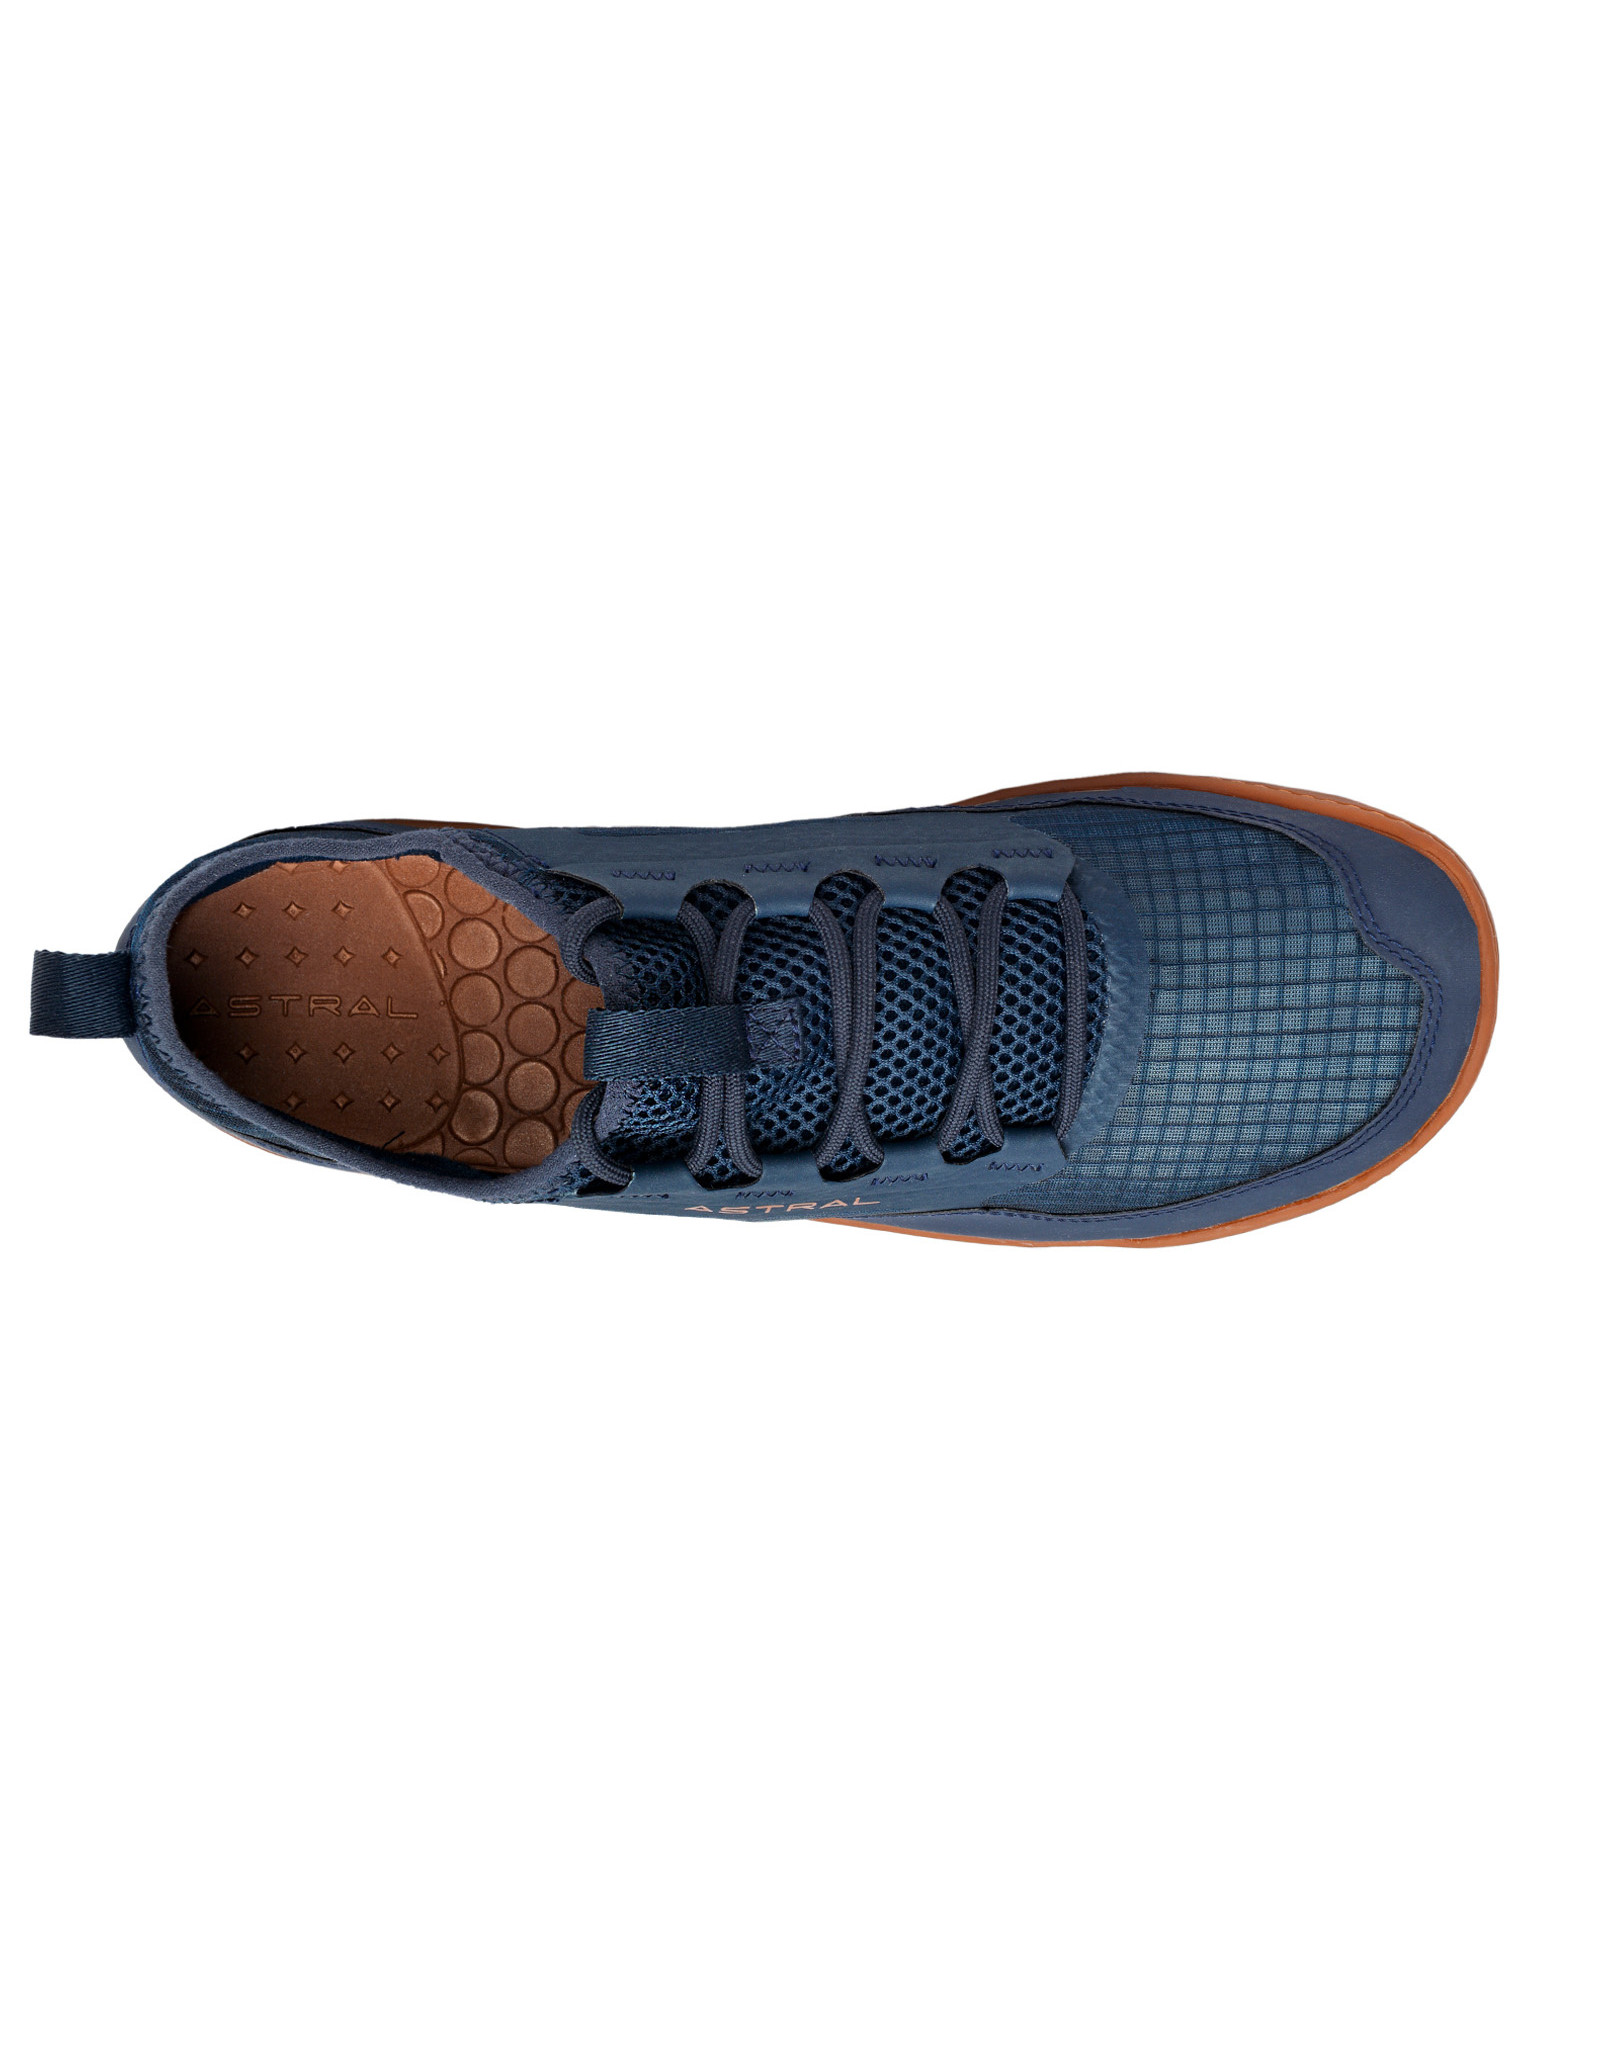 Astral Astral Loyak AC Shoes Mens - Classic Navy